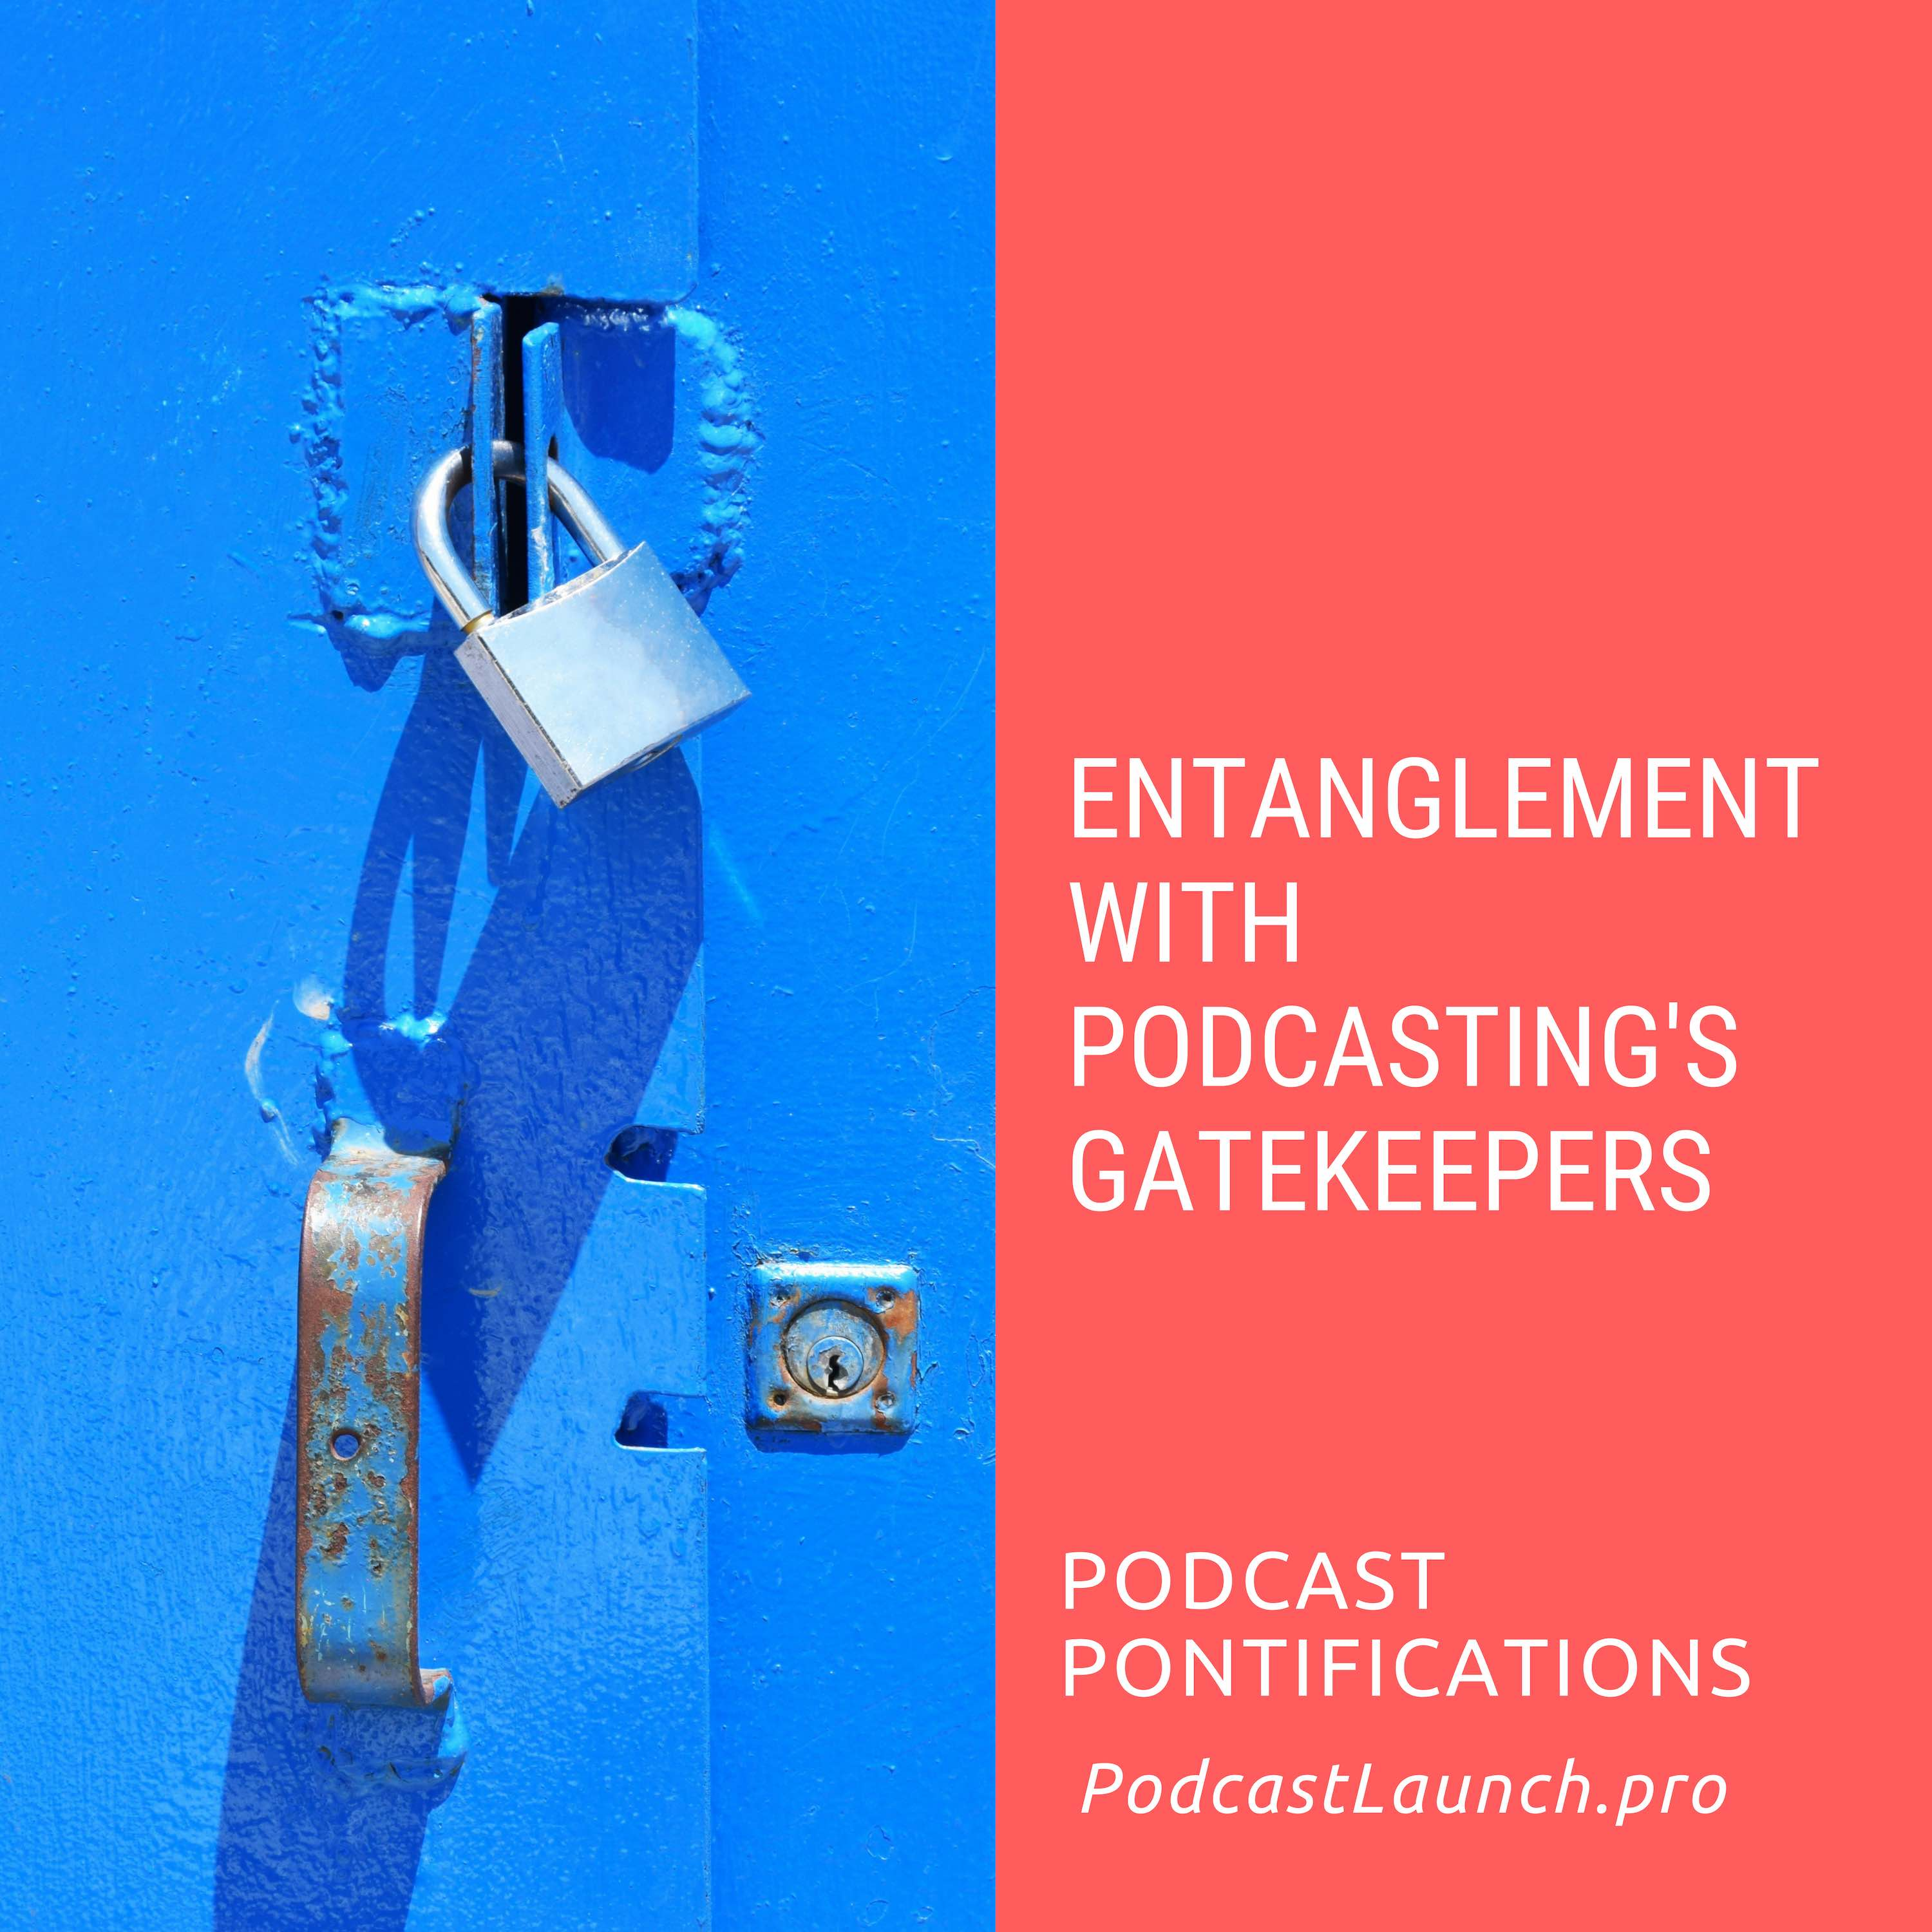 Entanglement with Podcasting's Gatekeepers